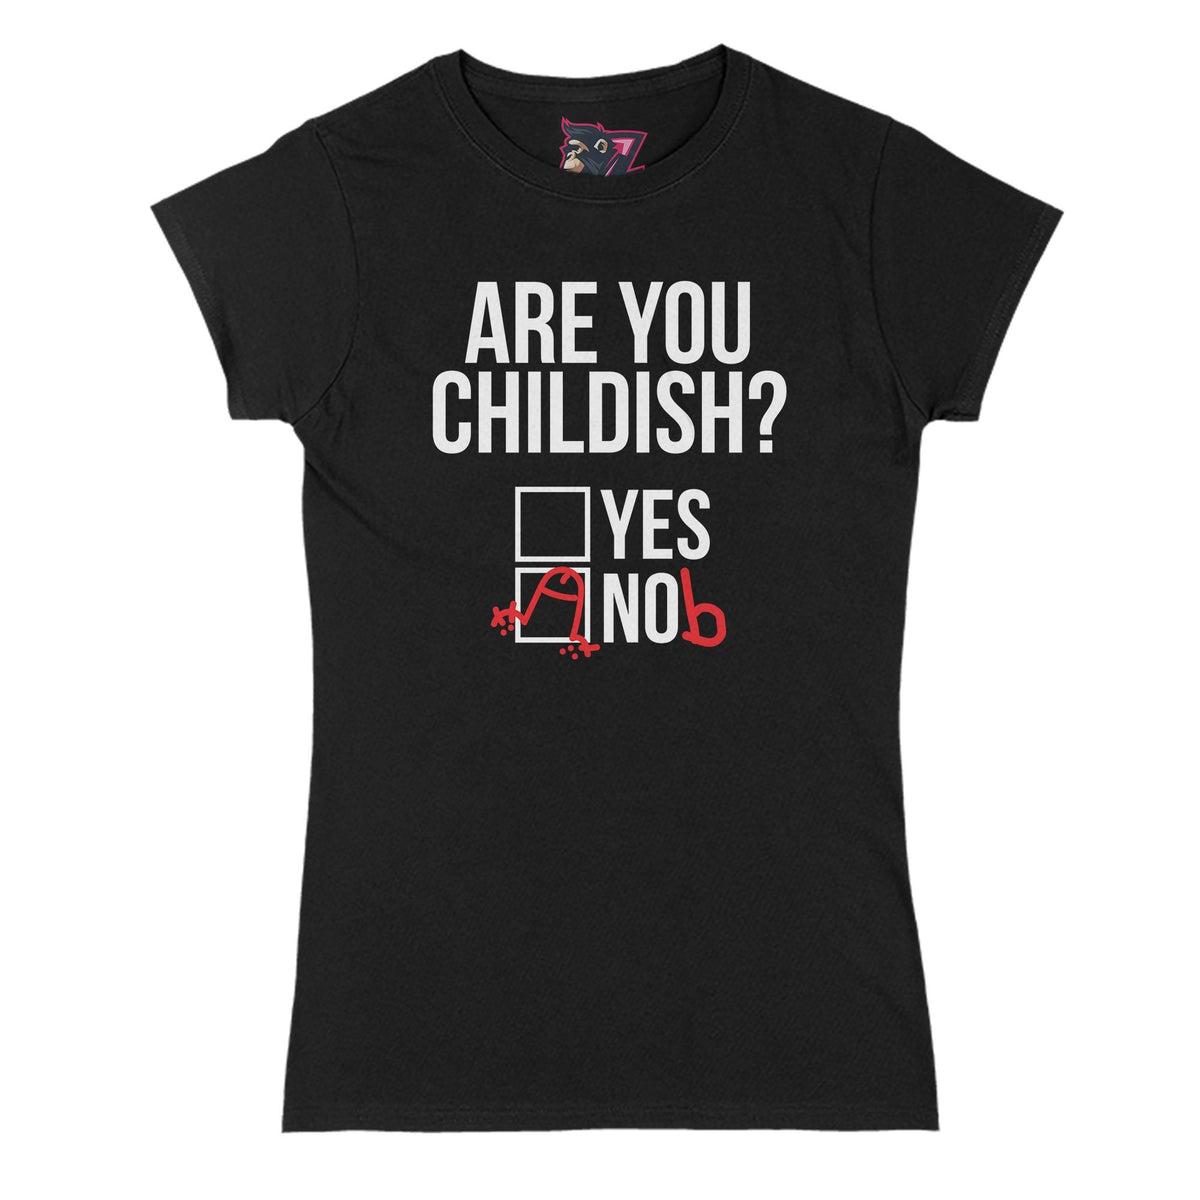 Childish? Yes/Nob Primate Novelty Women's T-Shirt Adults: S